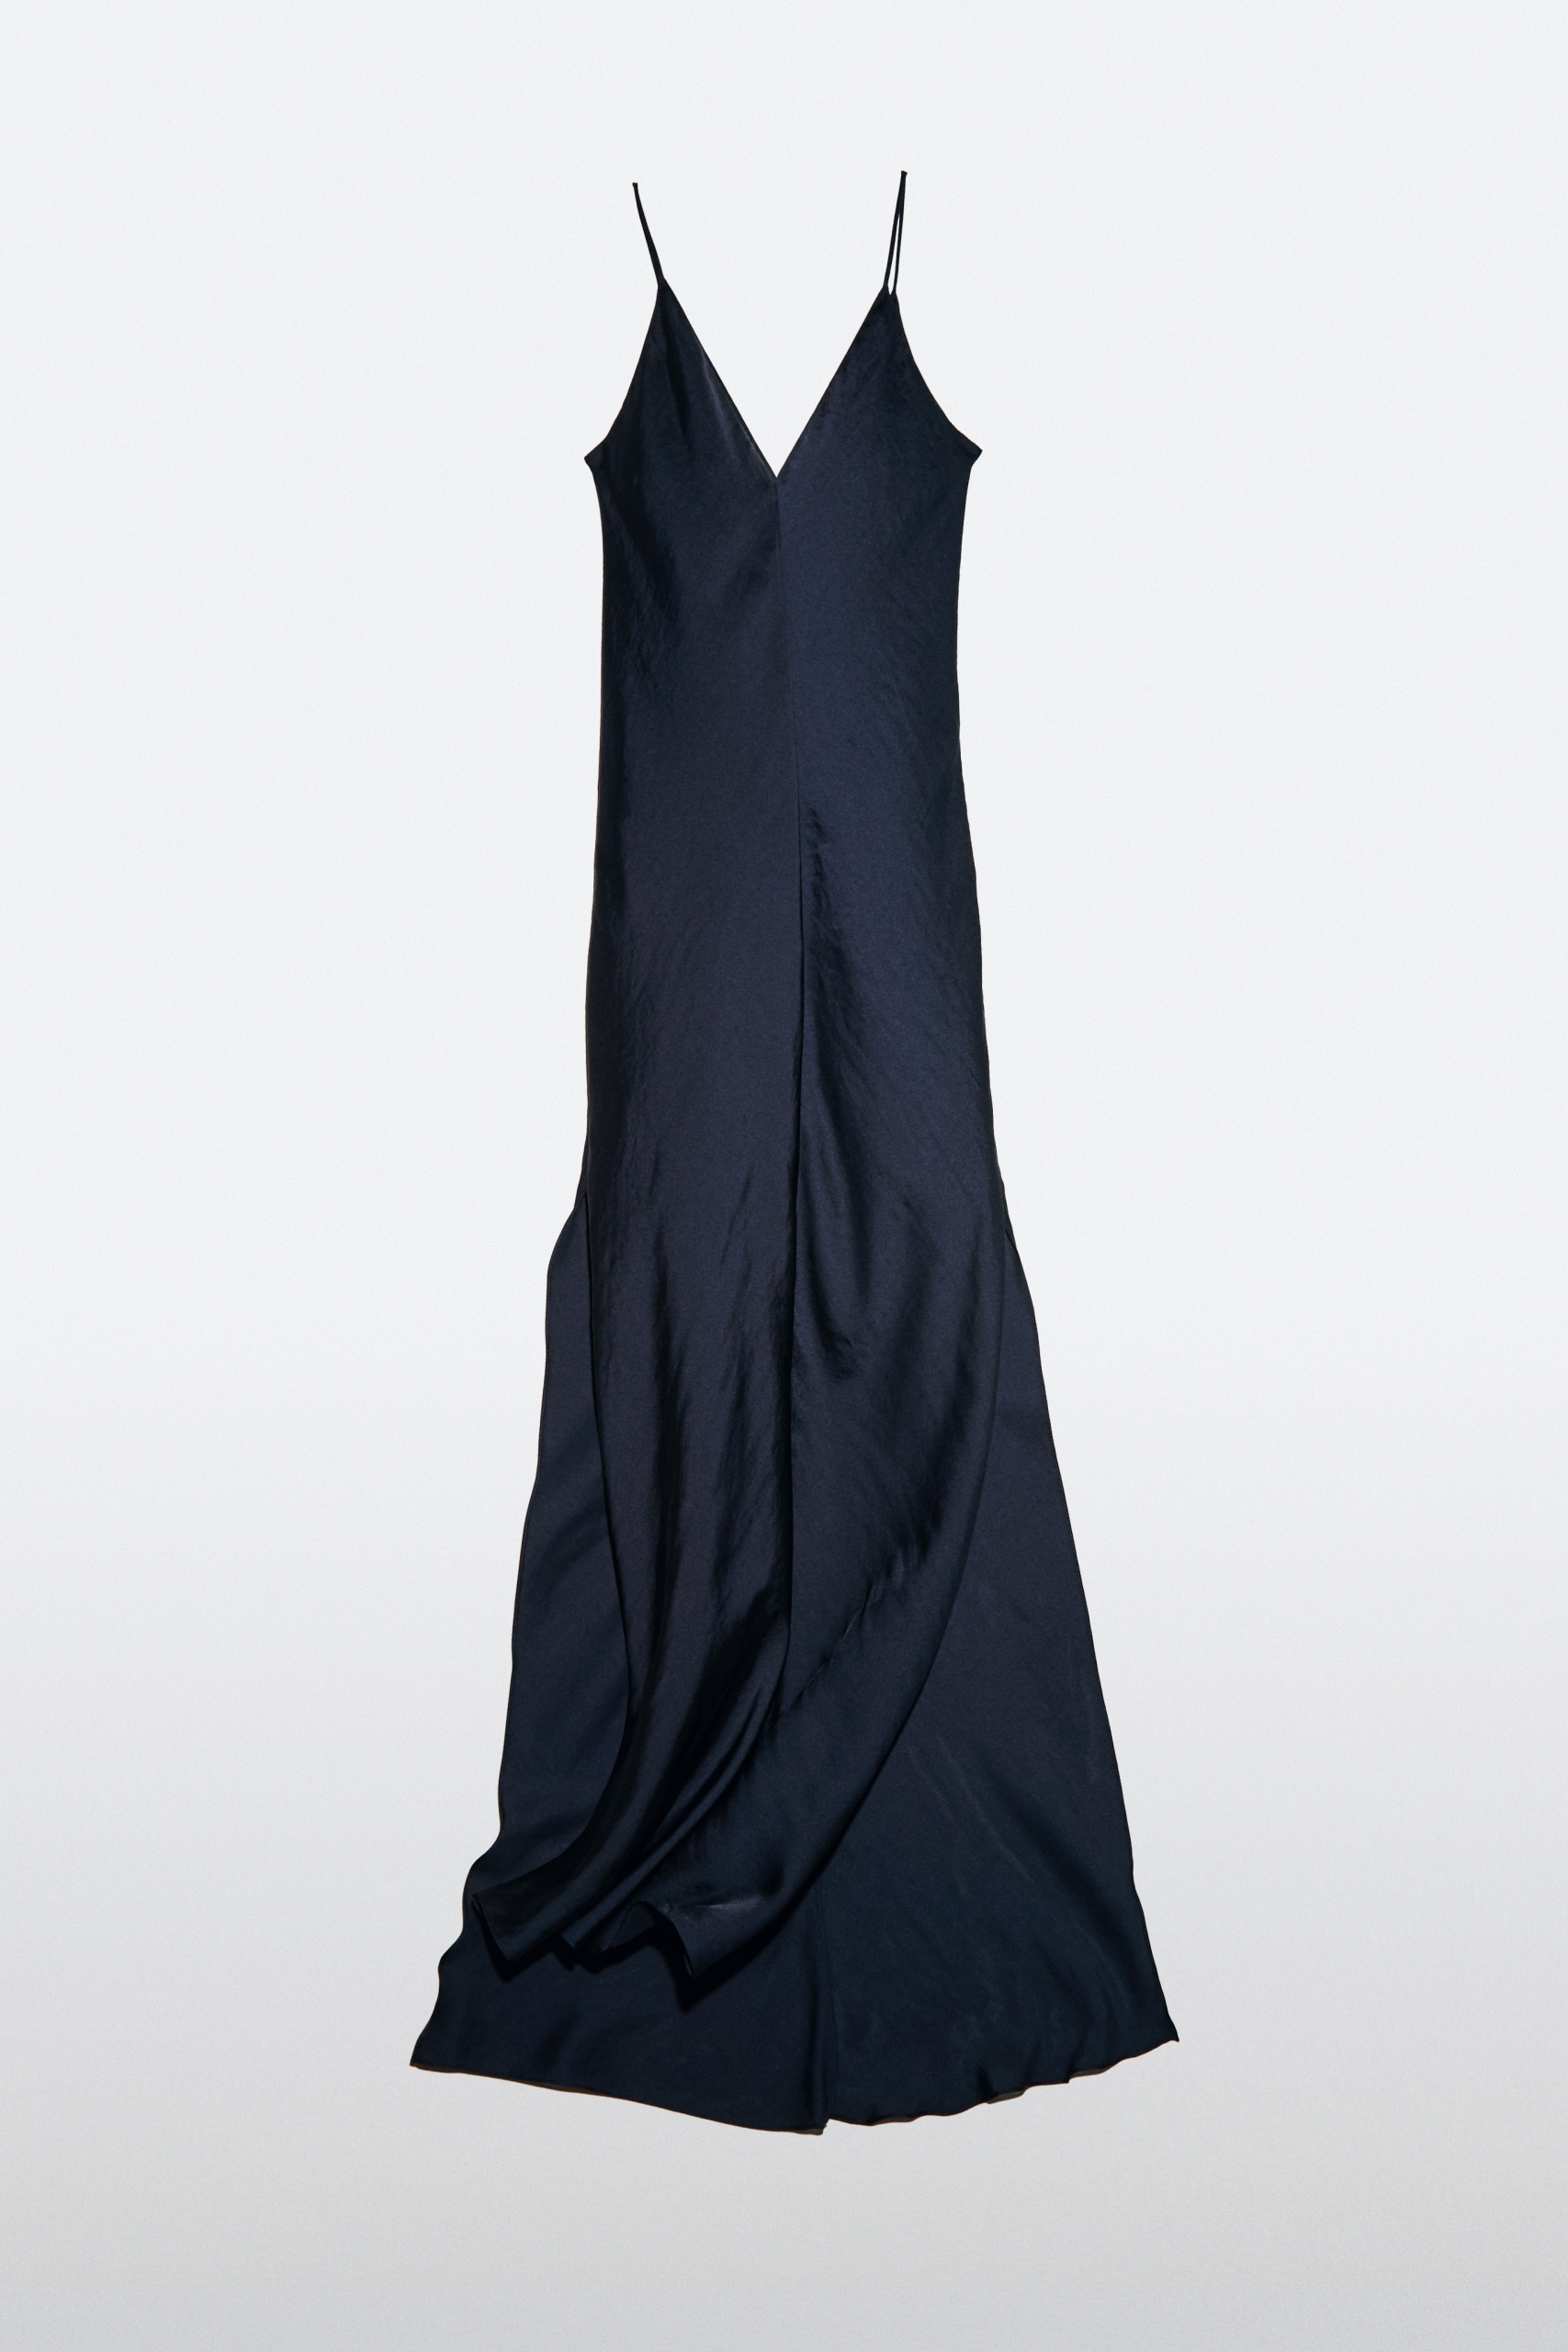 ©OBANDO | NAVY LONG SLIP scaled